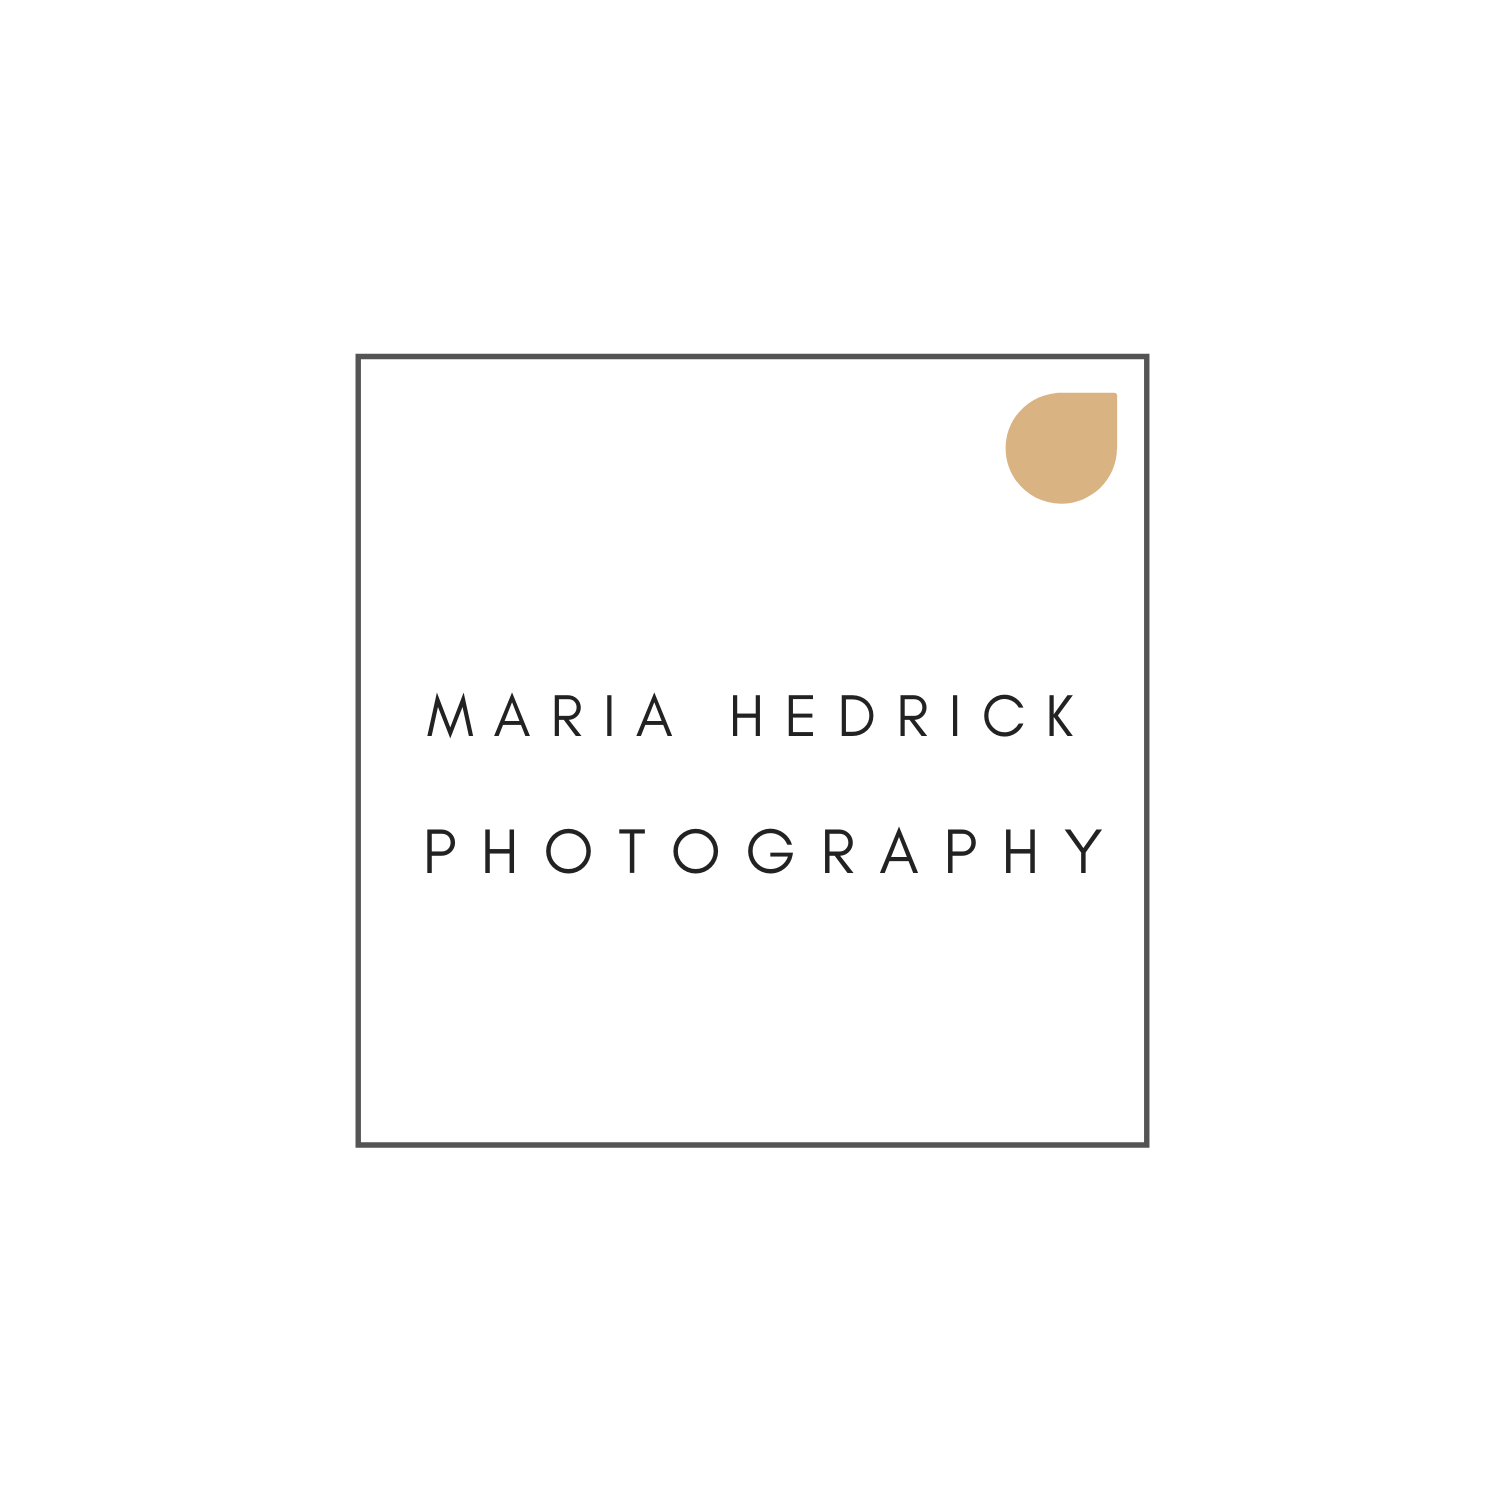 Maria Hedrick Photography